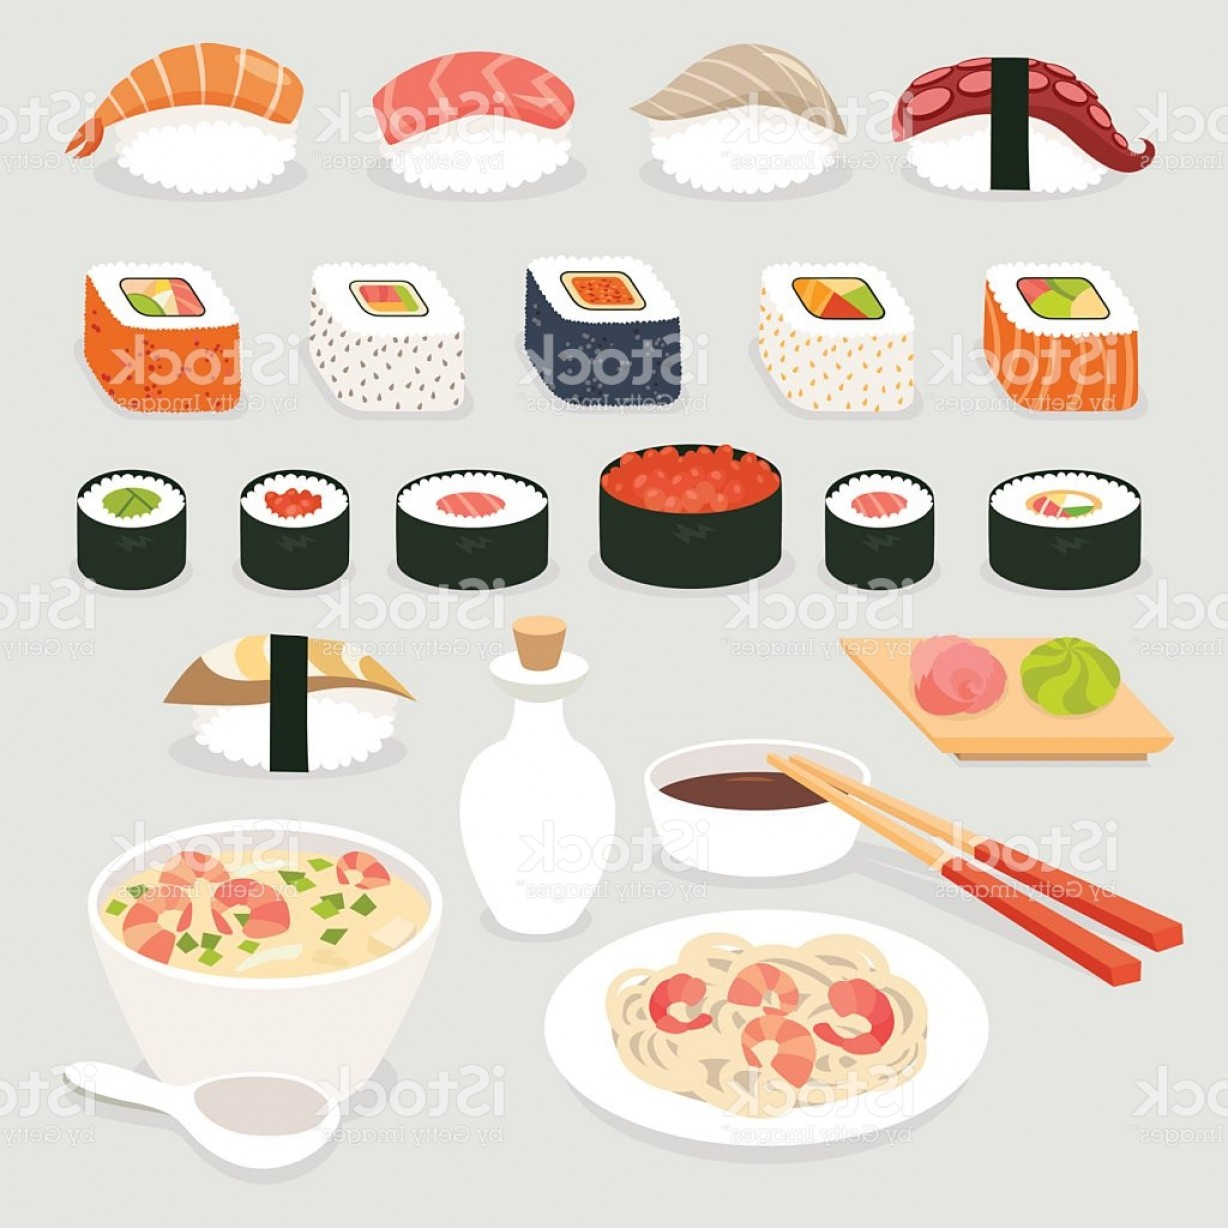 Sushi Vector Art: Sushi Set Sushi Vector Cartoon Style Japanese Food Objects Set Gm